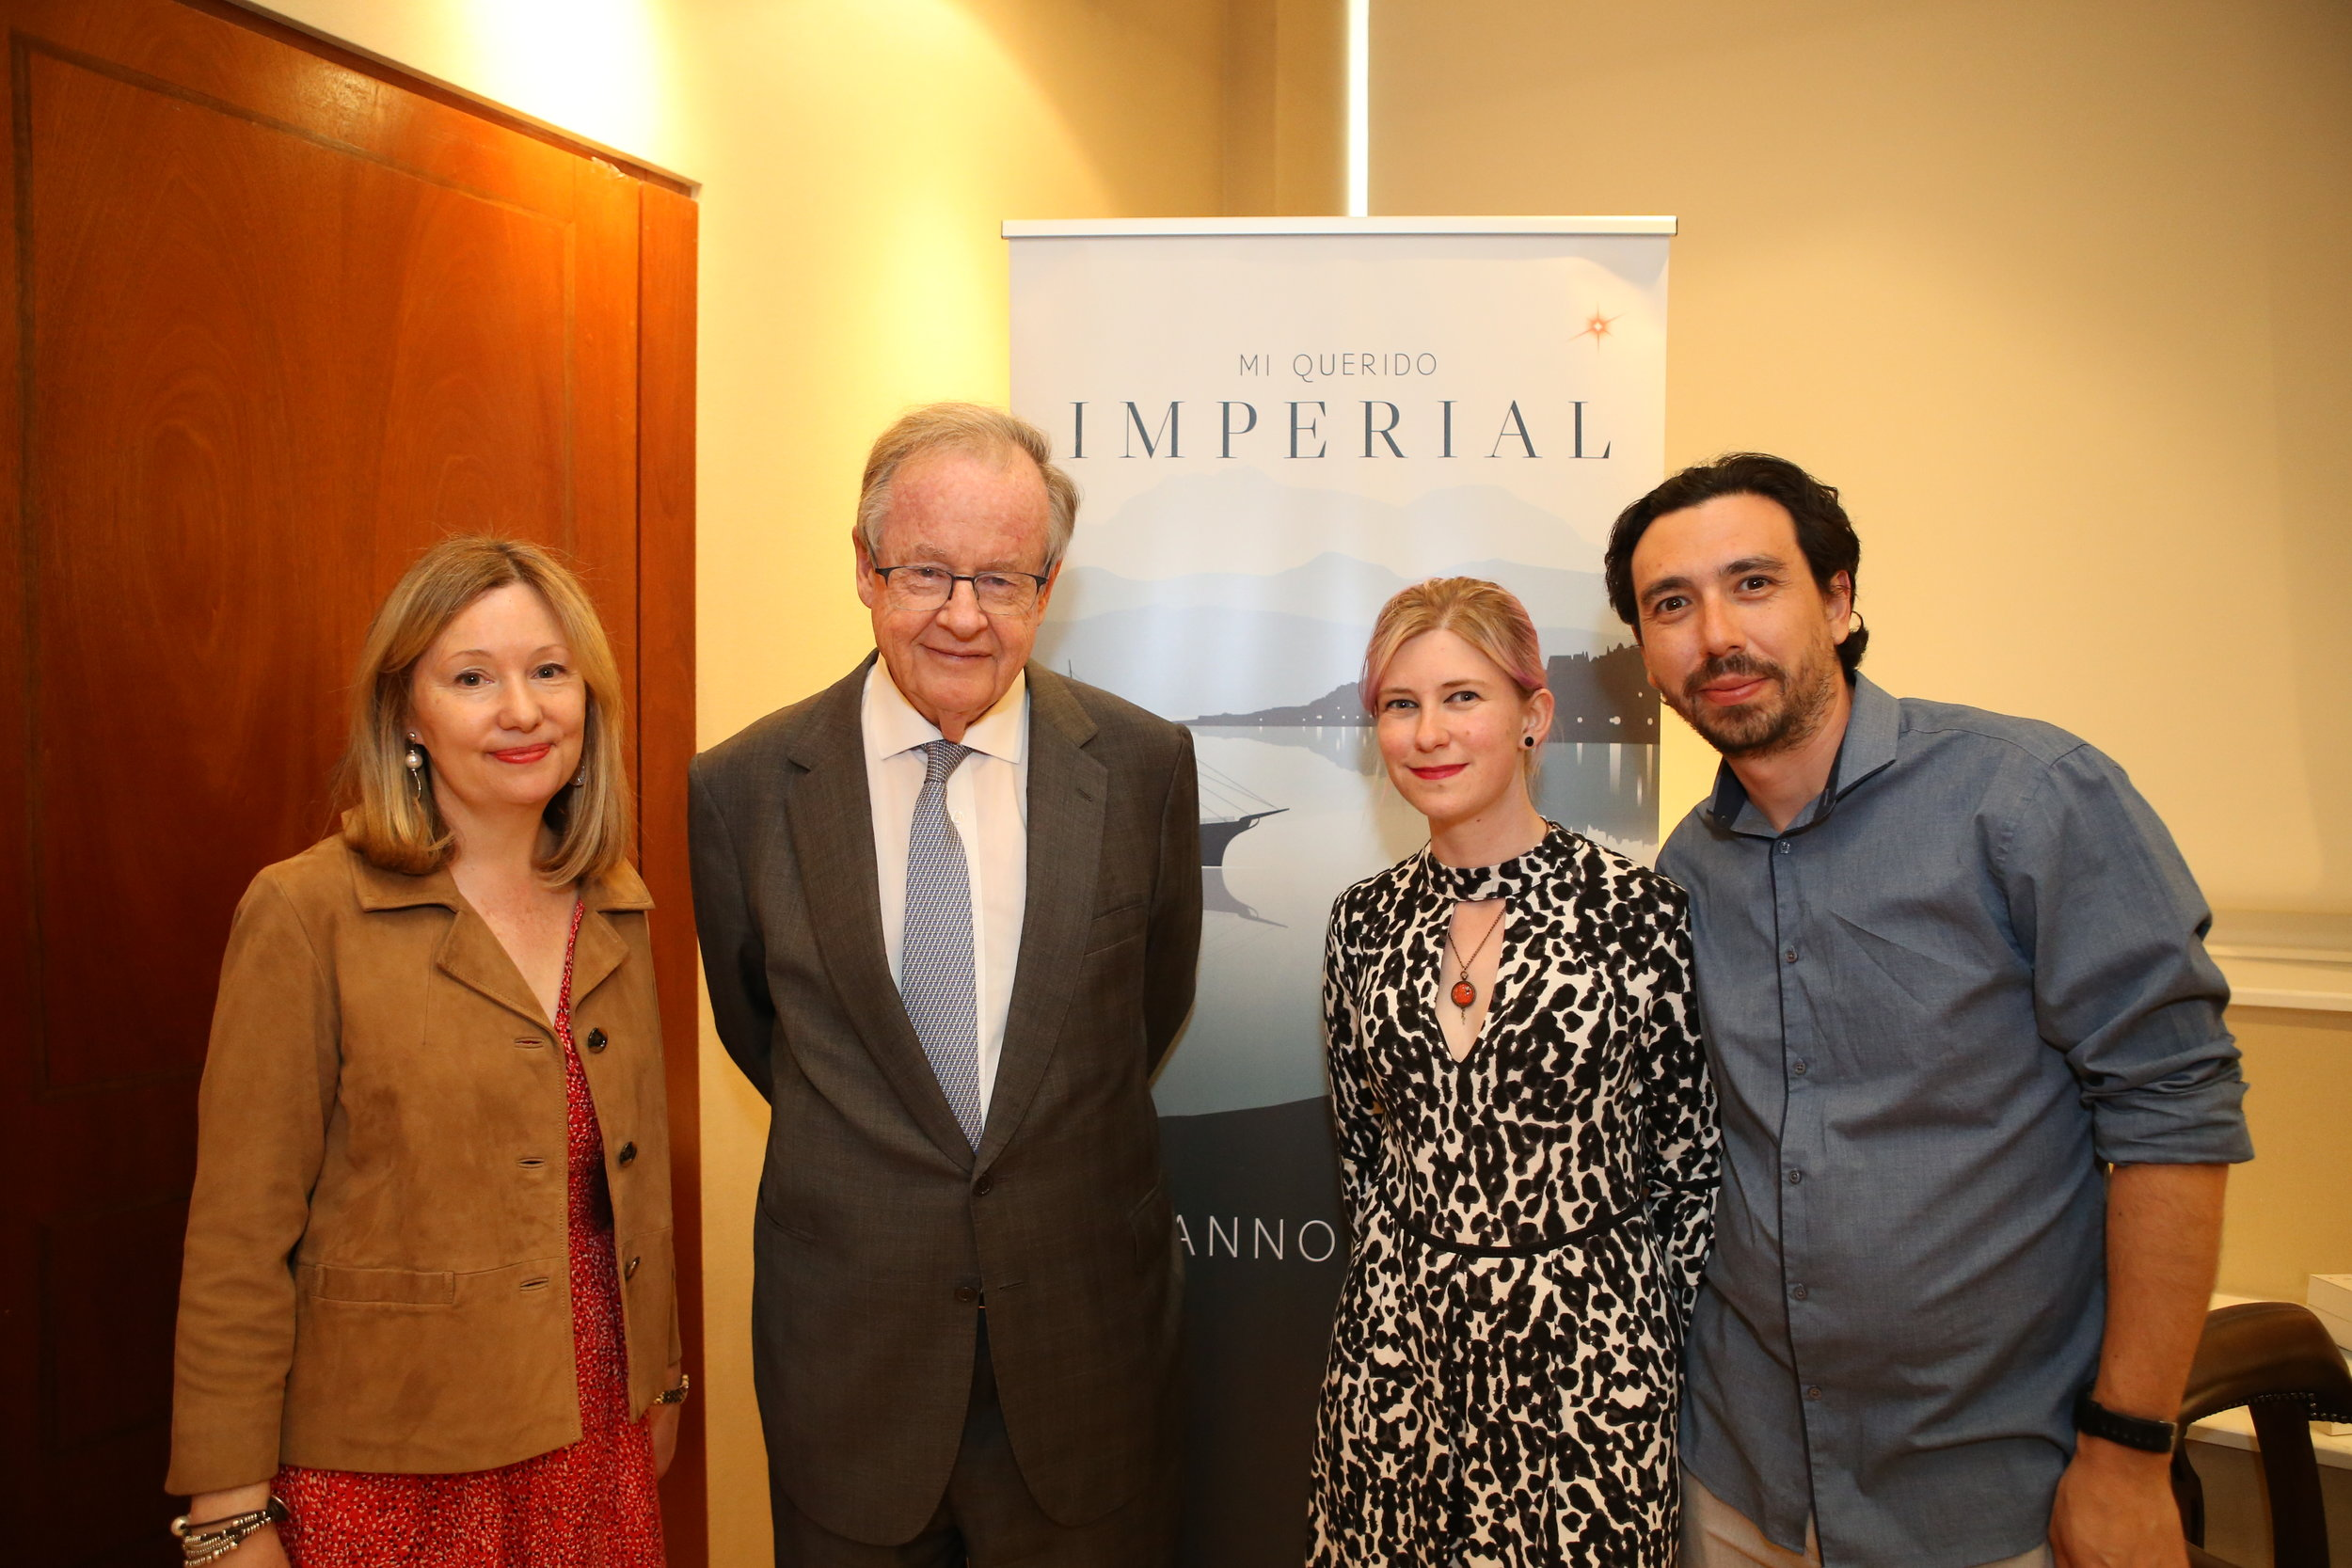 With the Ambassador, David Gallagher, and Sophie Lloyd-Owen and Jorge Vasques, from Victorina Press.